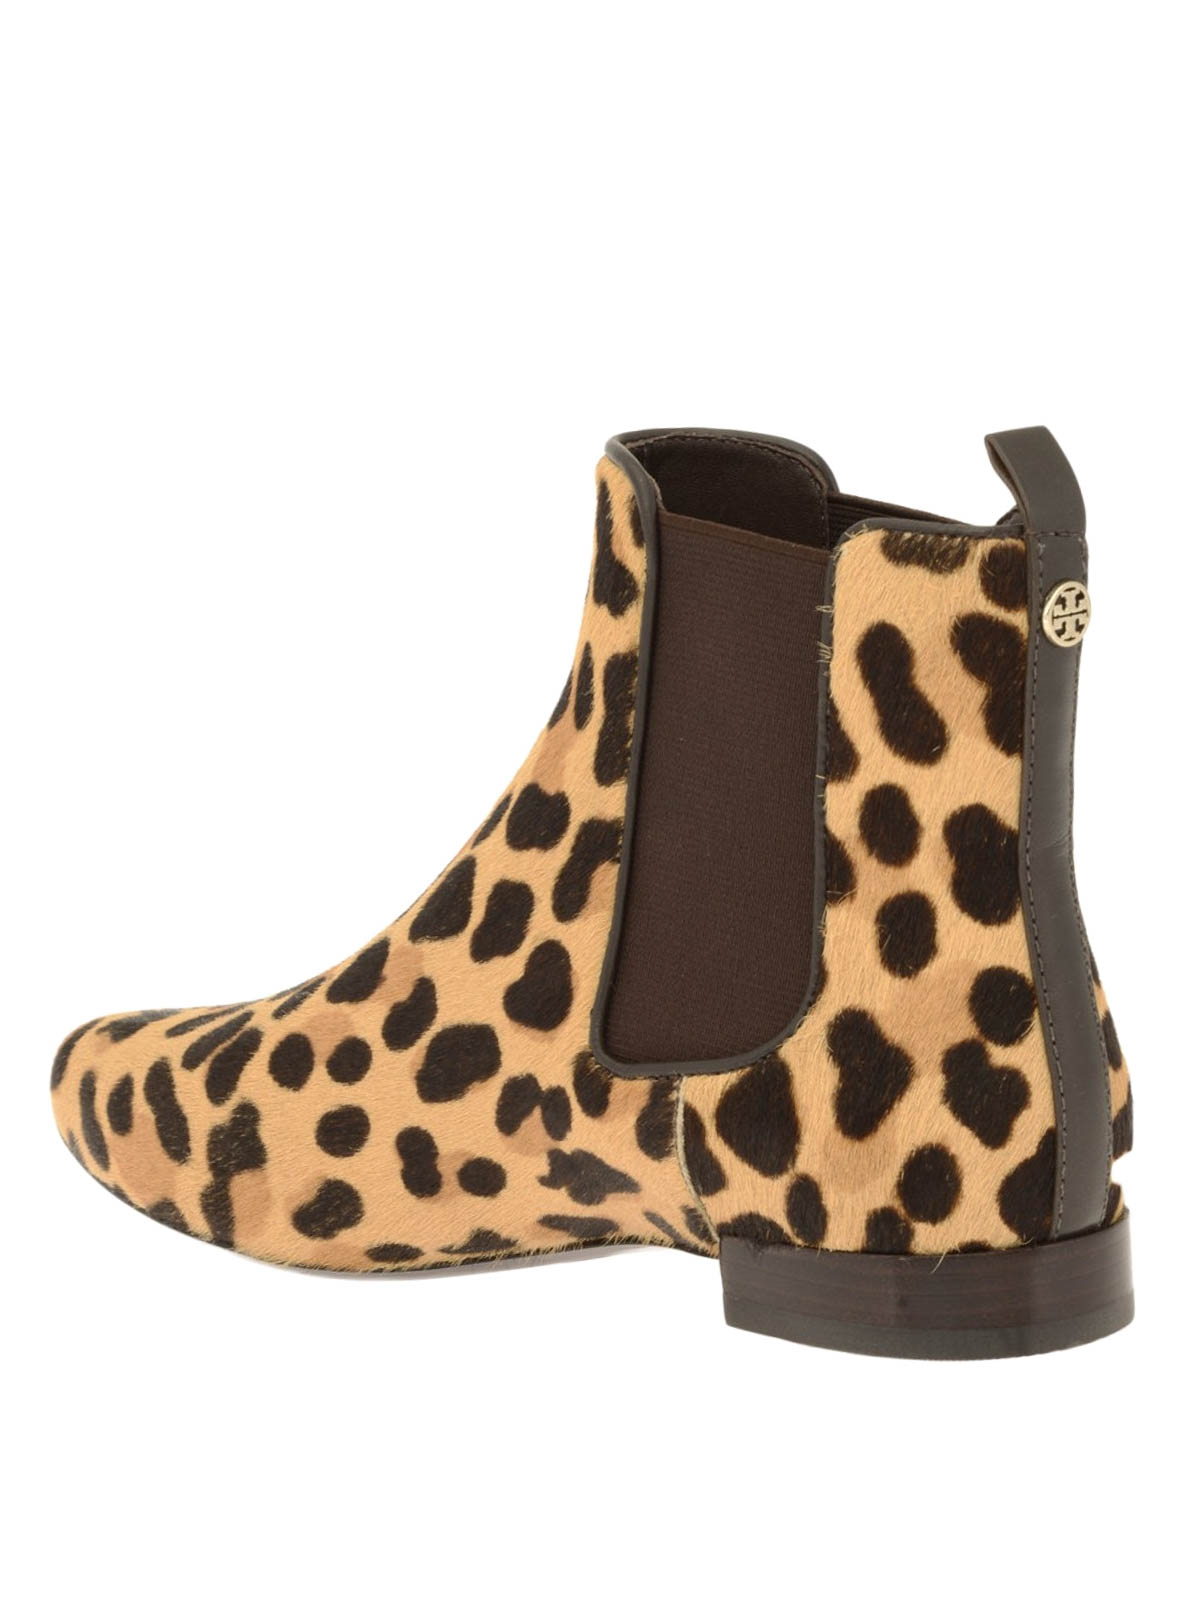 053f84705 Tory Burch - Animal print pony hair Orsay bootie - ankle boots ...